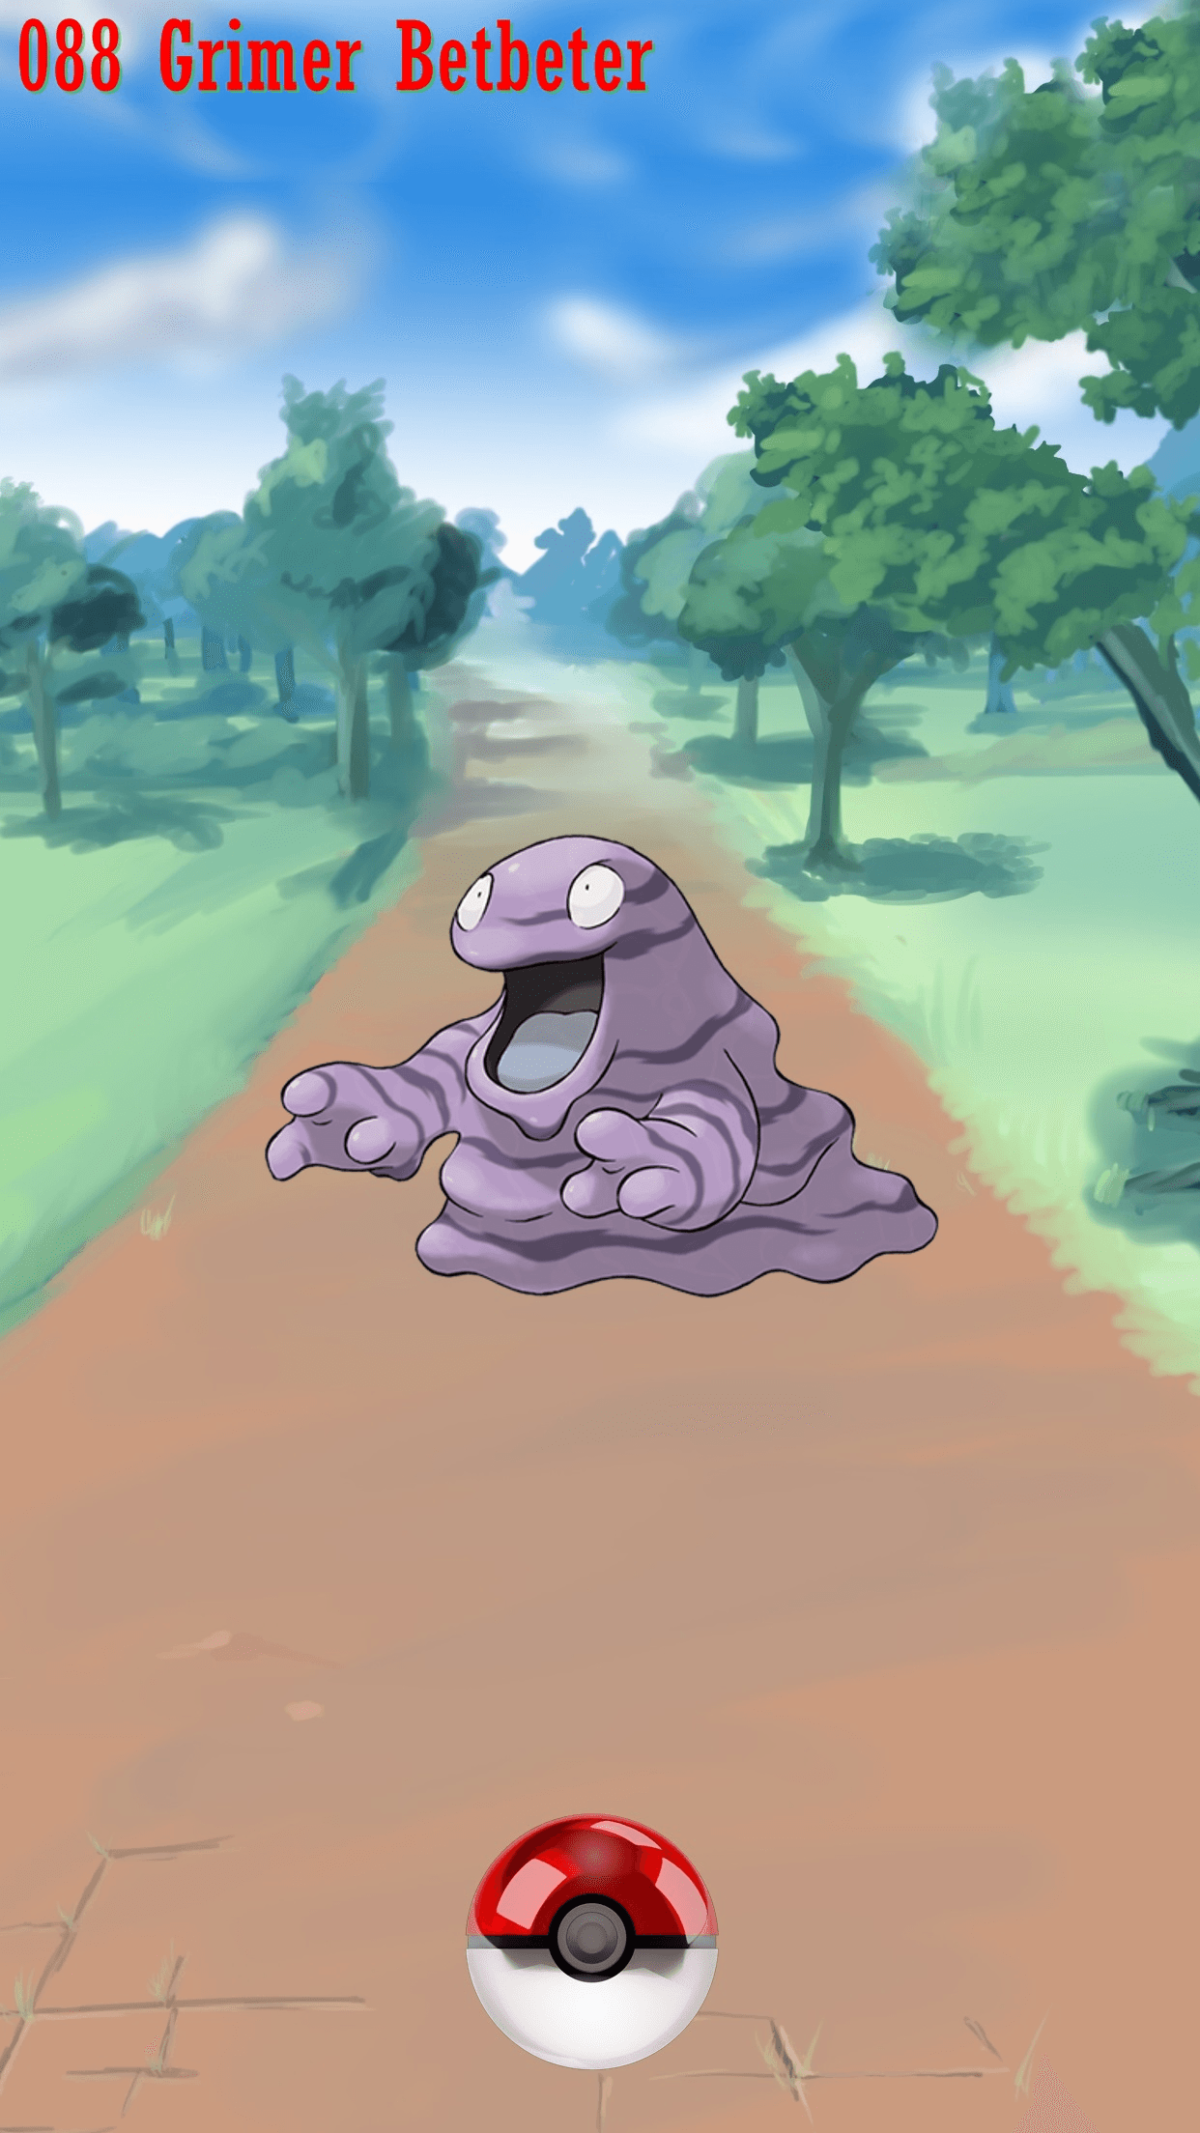 088 Street Pokeball Grimer Betbeter | Wallpaper